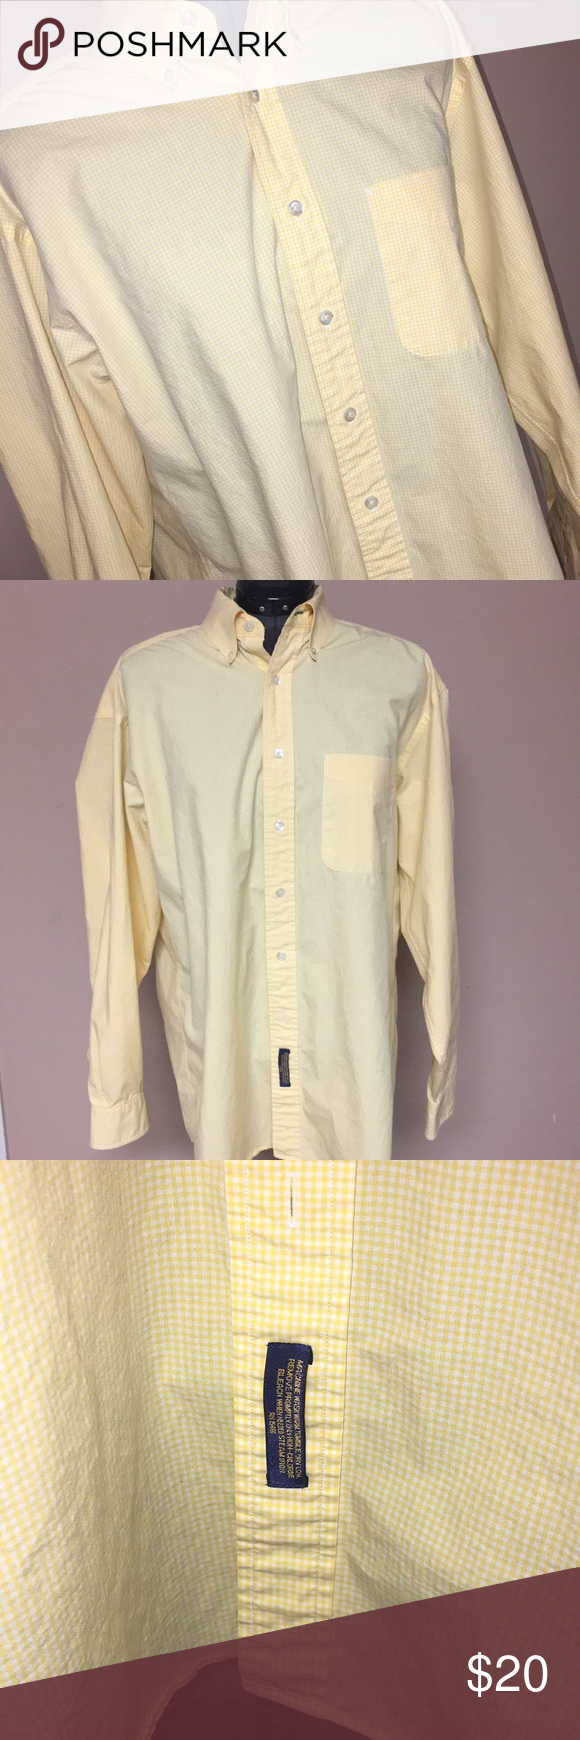 Tommy Hilfiger tailored Button Up dressPlaid Shirt Great color for all those summer tans! Pocket on front. Light weight fabric. Used but in great condition. Tommy Hilfiger Shirts Dress Shirts